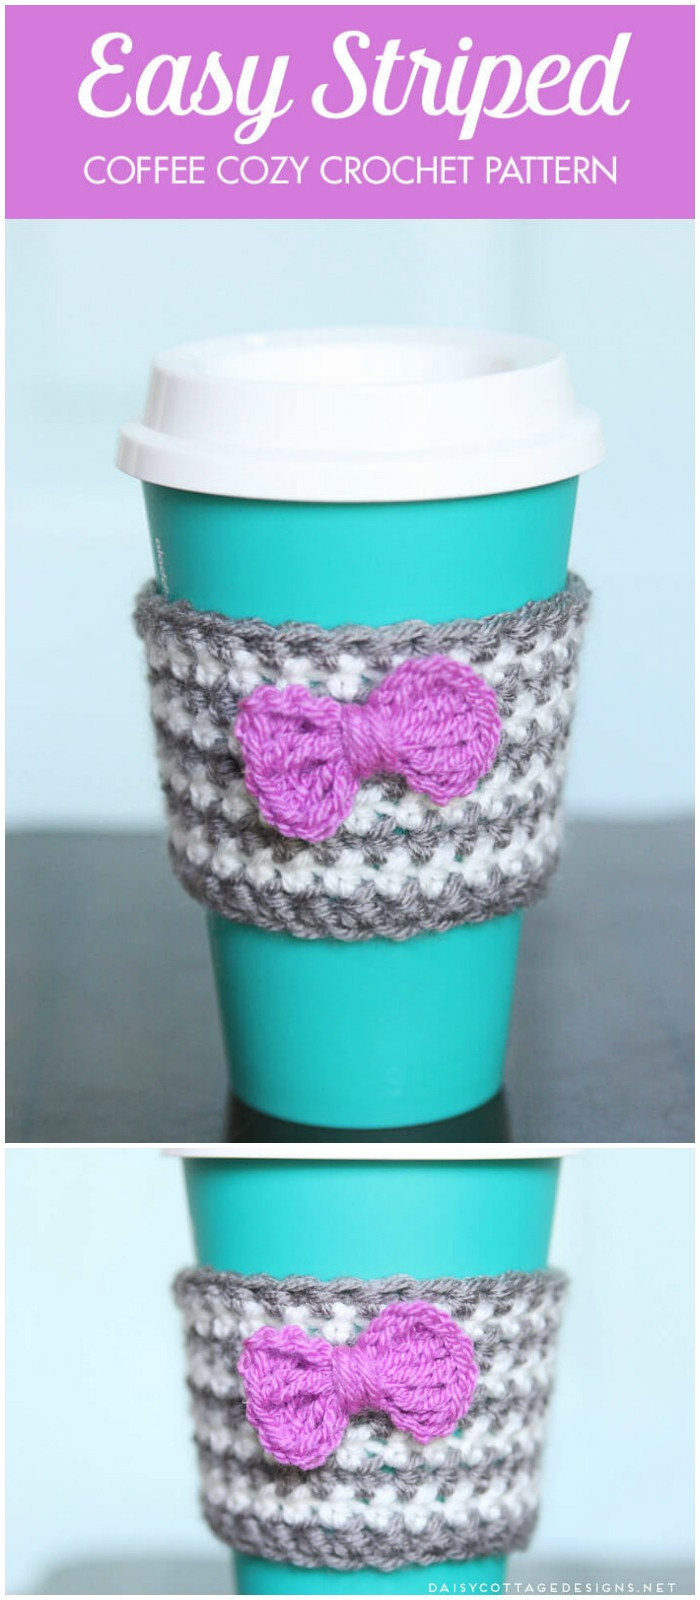 Crochet Coffee Cup Cozy Fresh 8 Crochet Cozy Patterns Free Crochet Patterns • Diy Home Of Crochet Coffee Cup Cozy Luxury Pdf Crochet Pattern Coffee Mug Cozy with button by